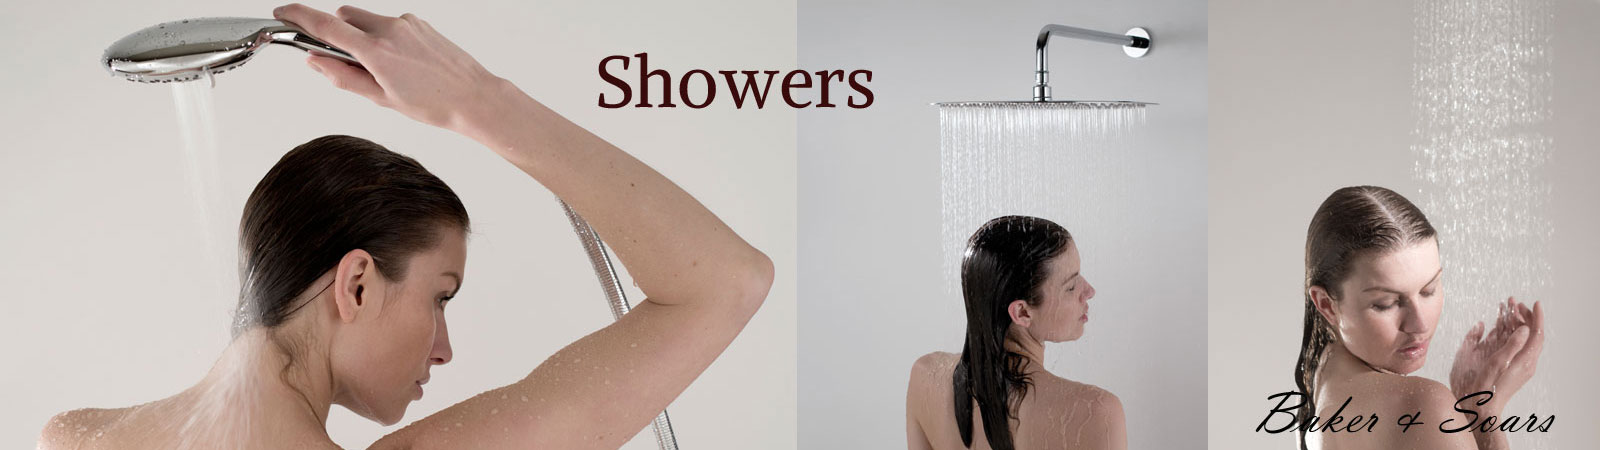 Showering with Baker and Soars